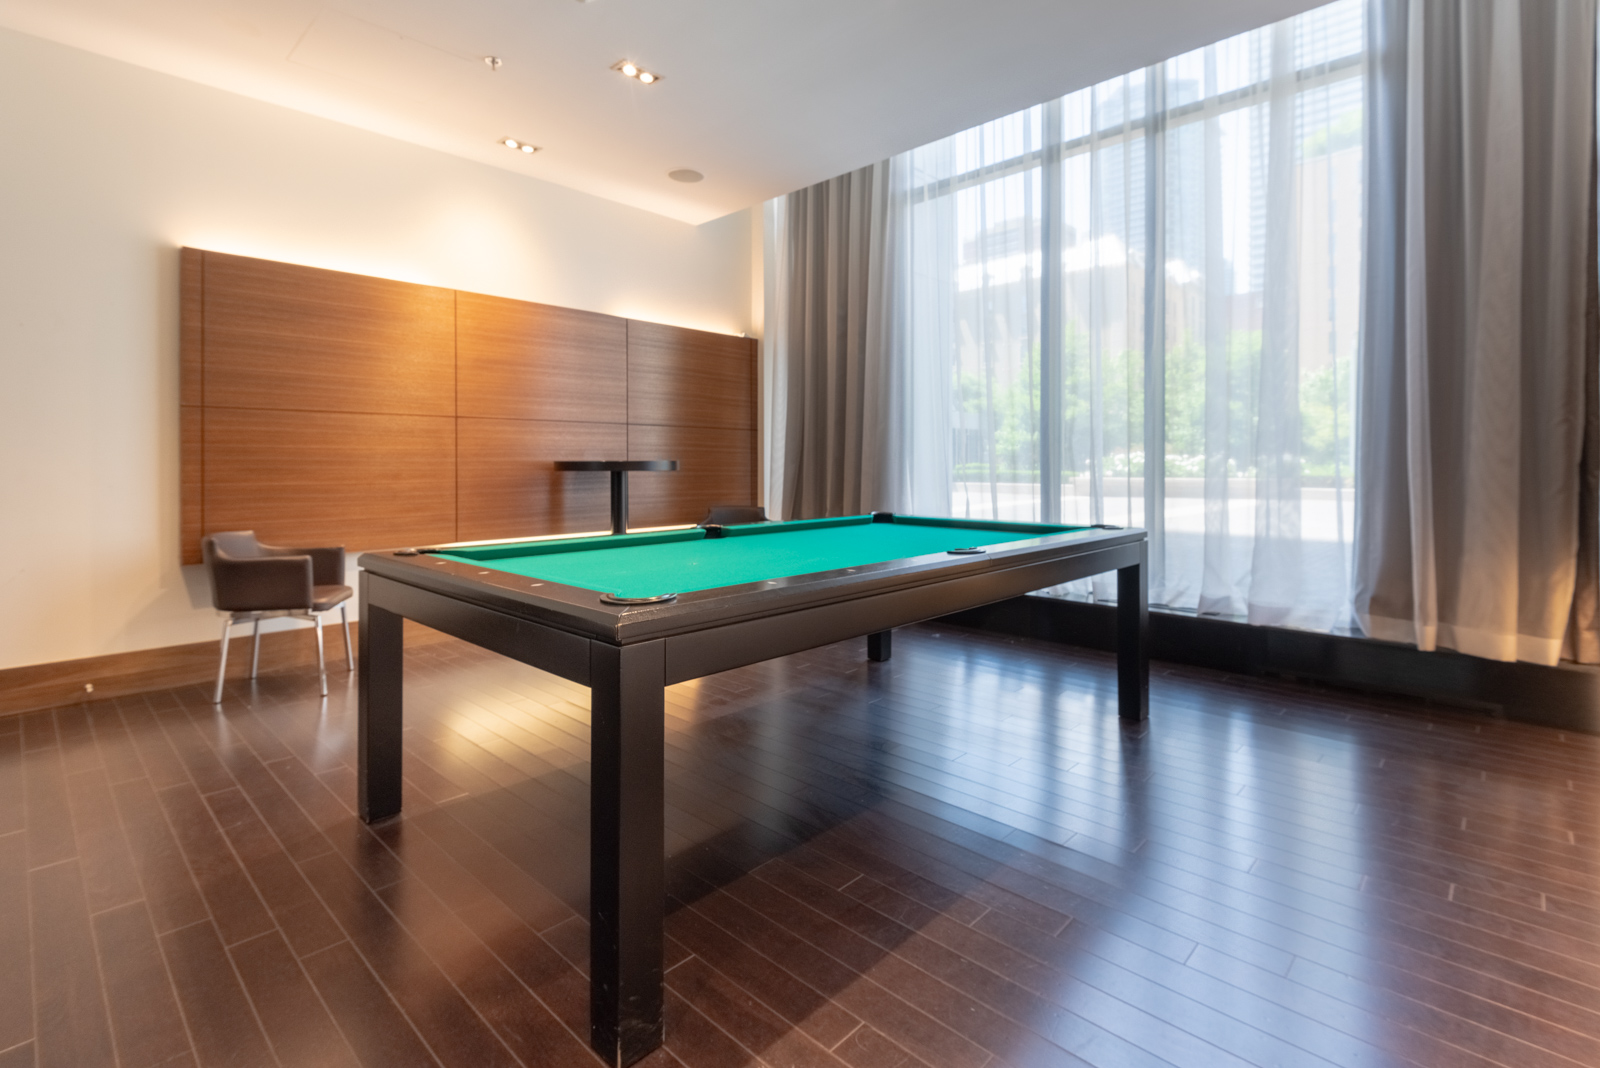 Empty room with large billiards table with green surface and dark brown floors at The Couture.